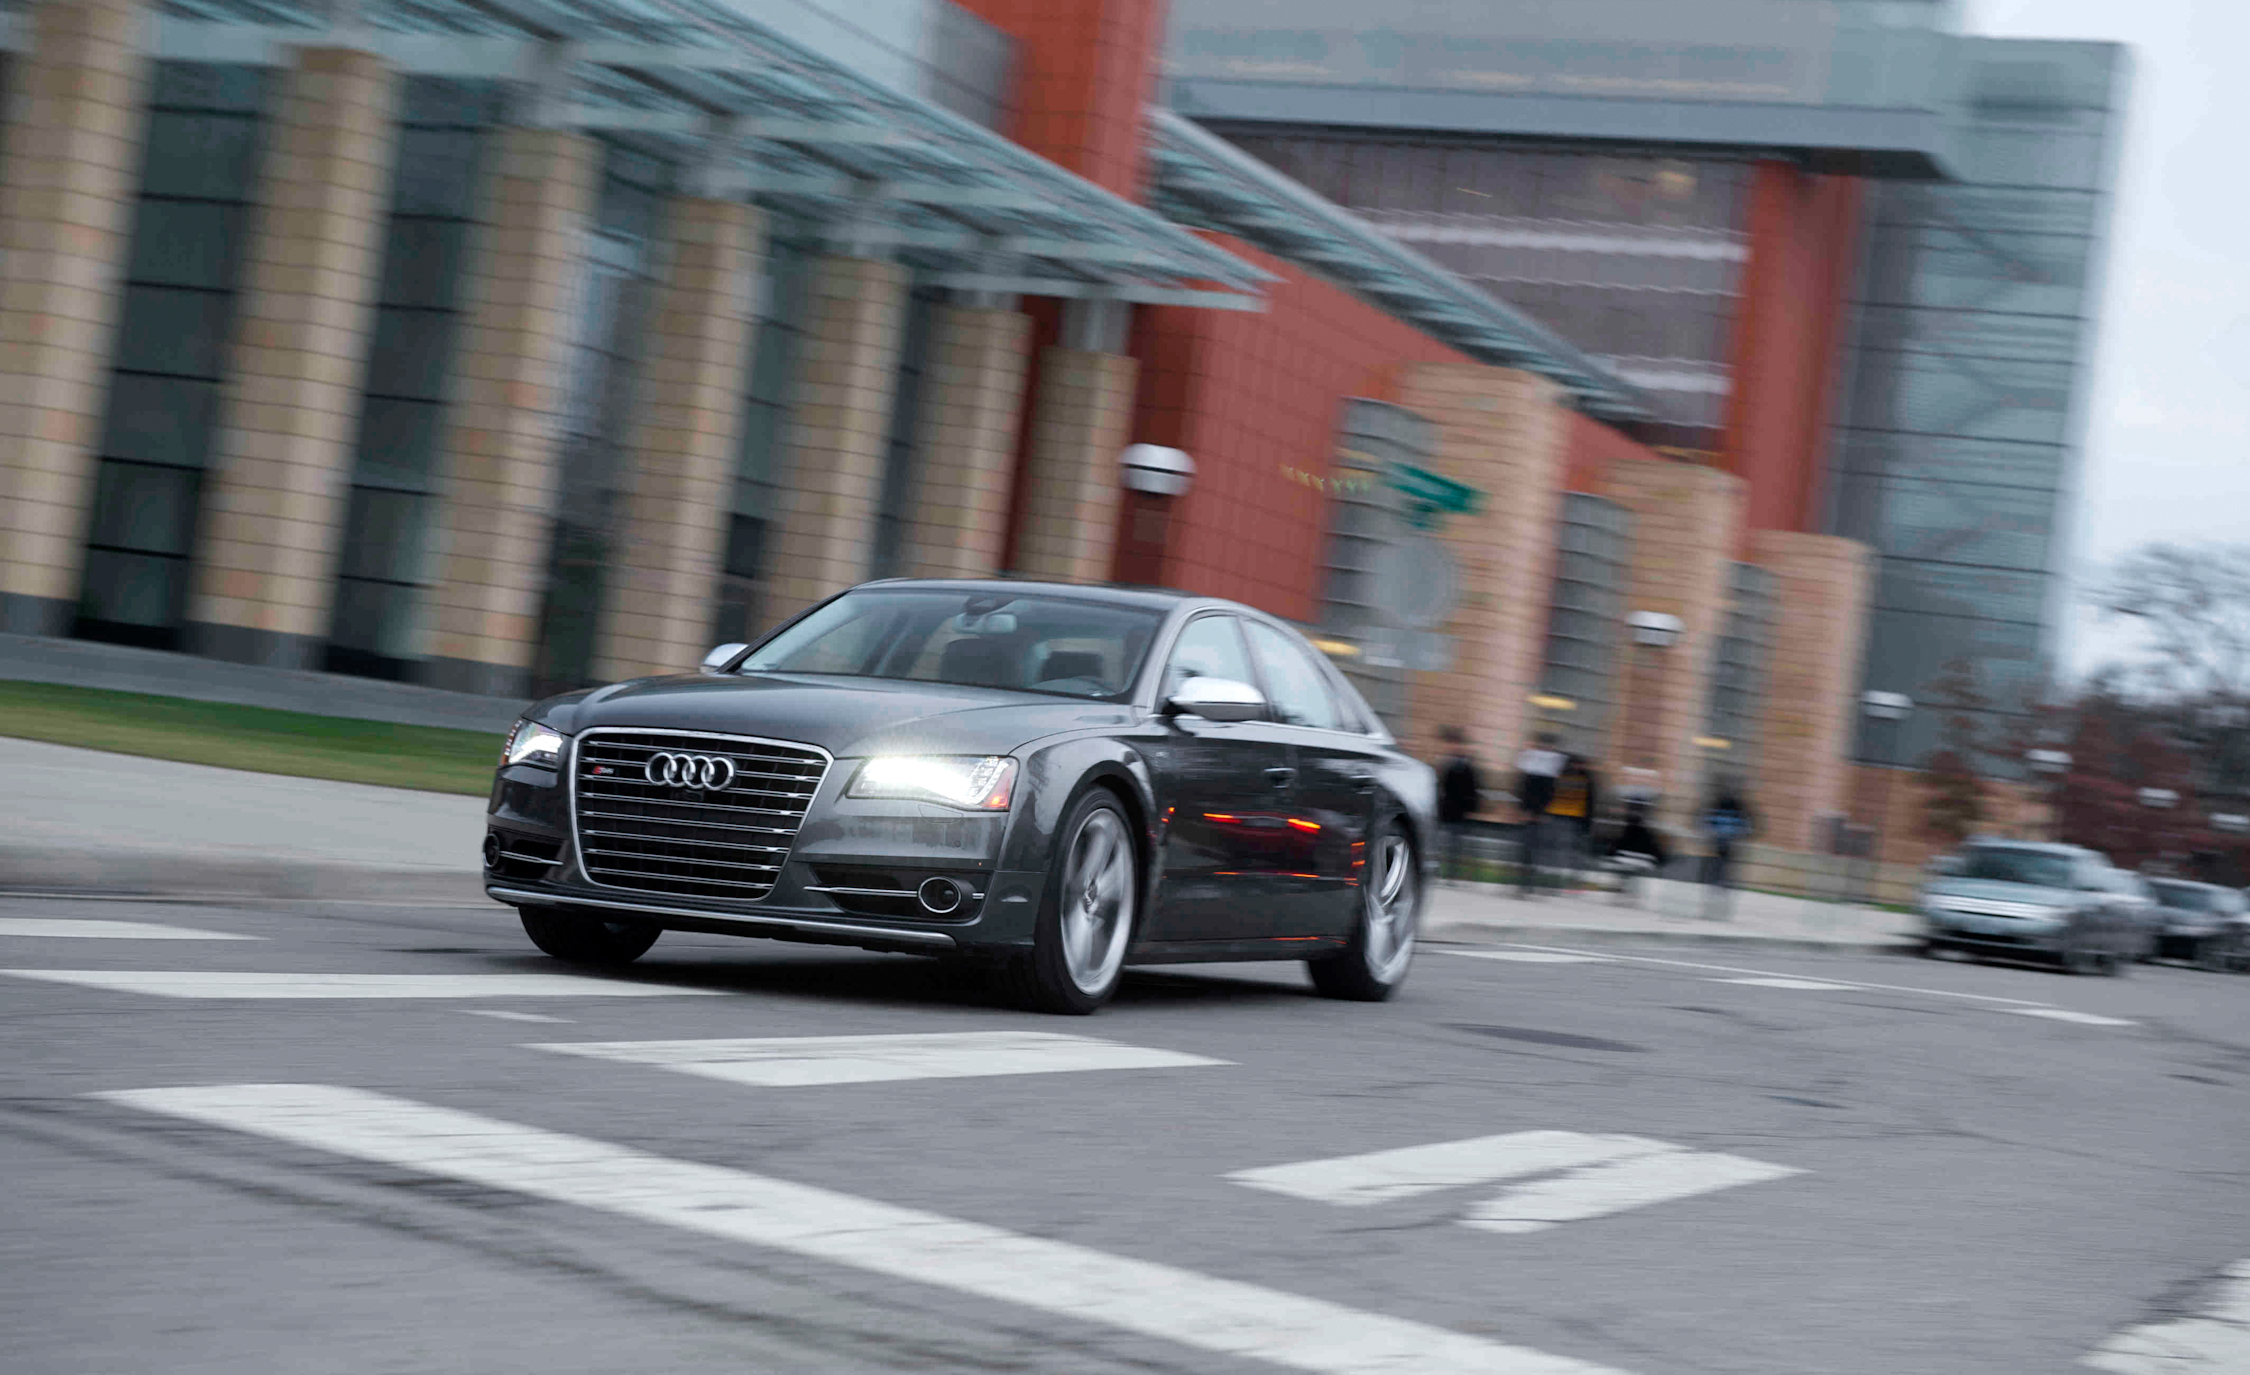 2013 Audi S8 Test Drive Front And Side View (View 4 of 25)